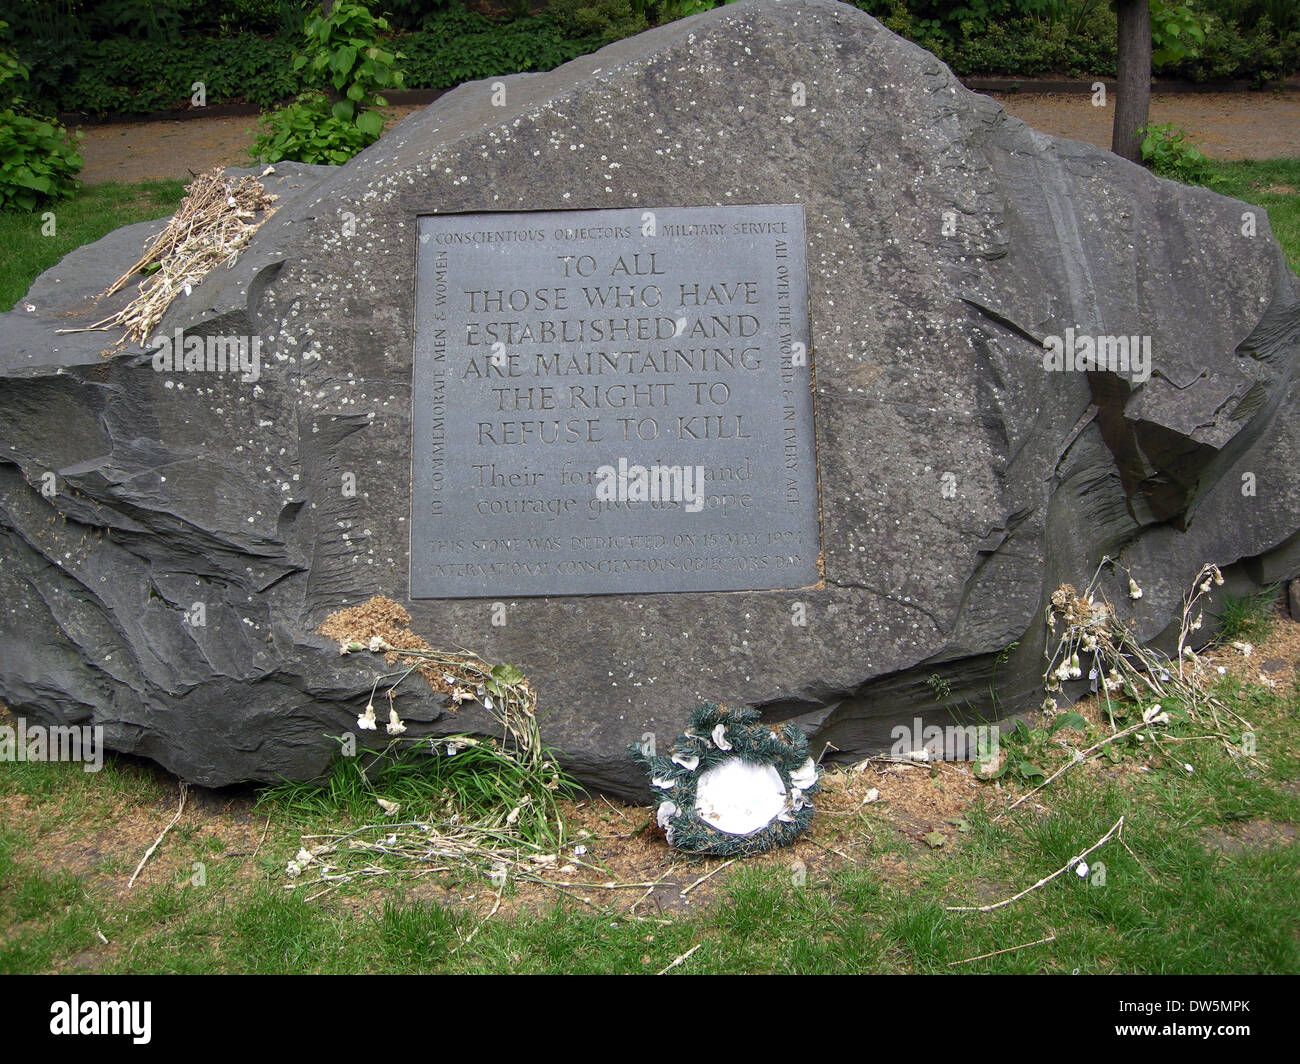 Conscientious objectors stone, Tavistock Square, London, England, UK. - Stock Image